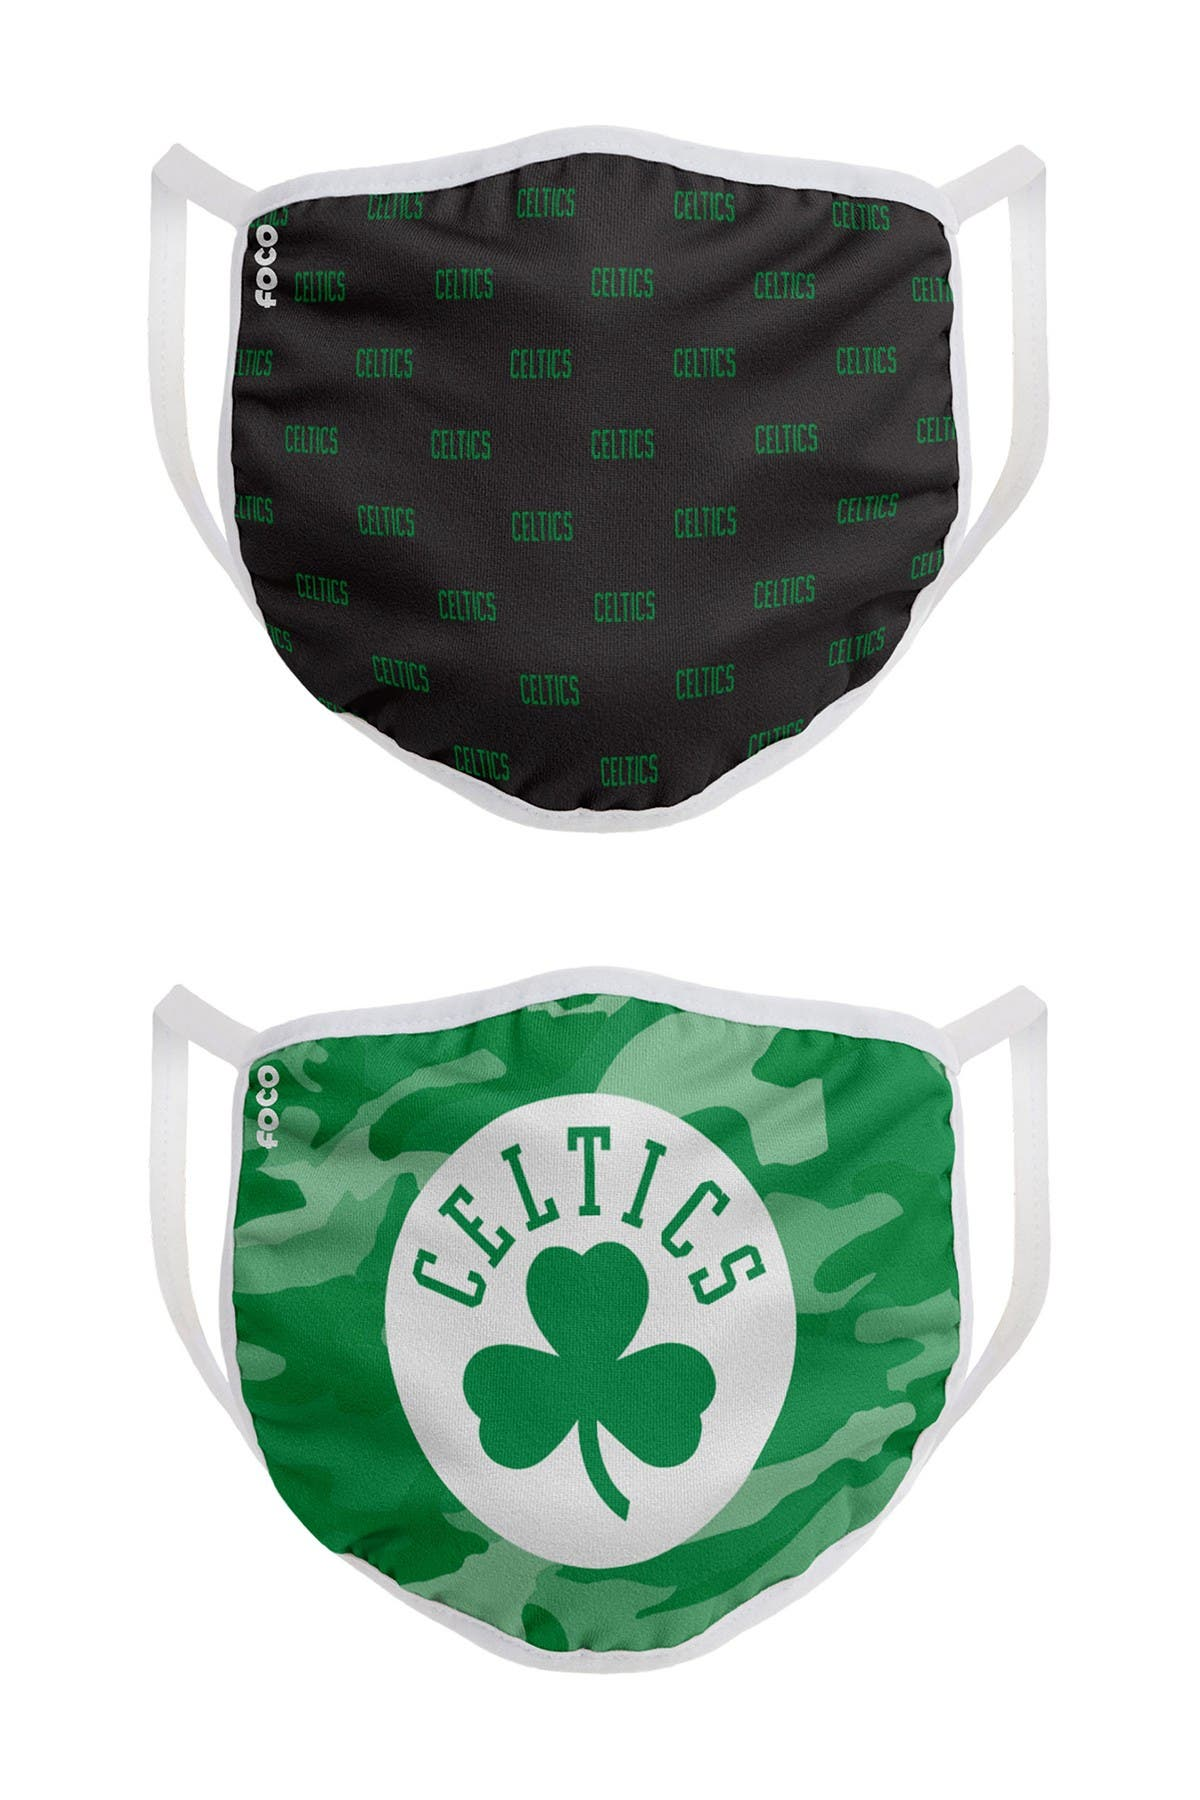 Image of FOCO NBA Boston Celtics Clutch Printed Face Cover - Pack of 2